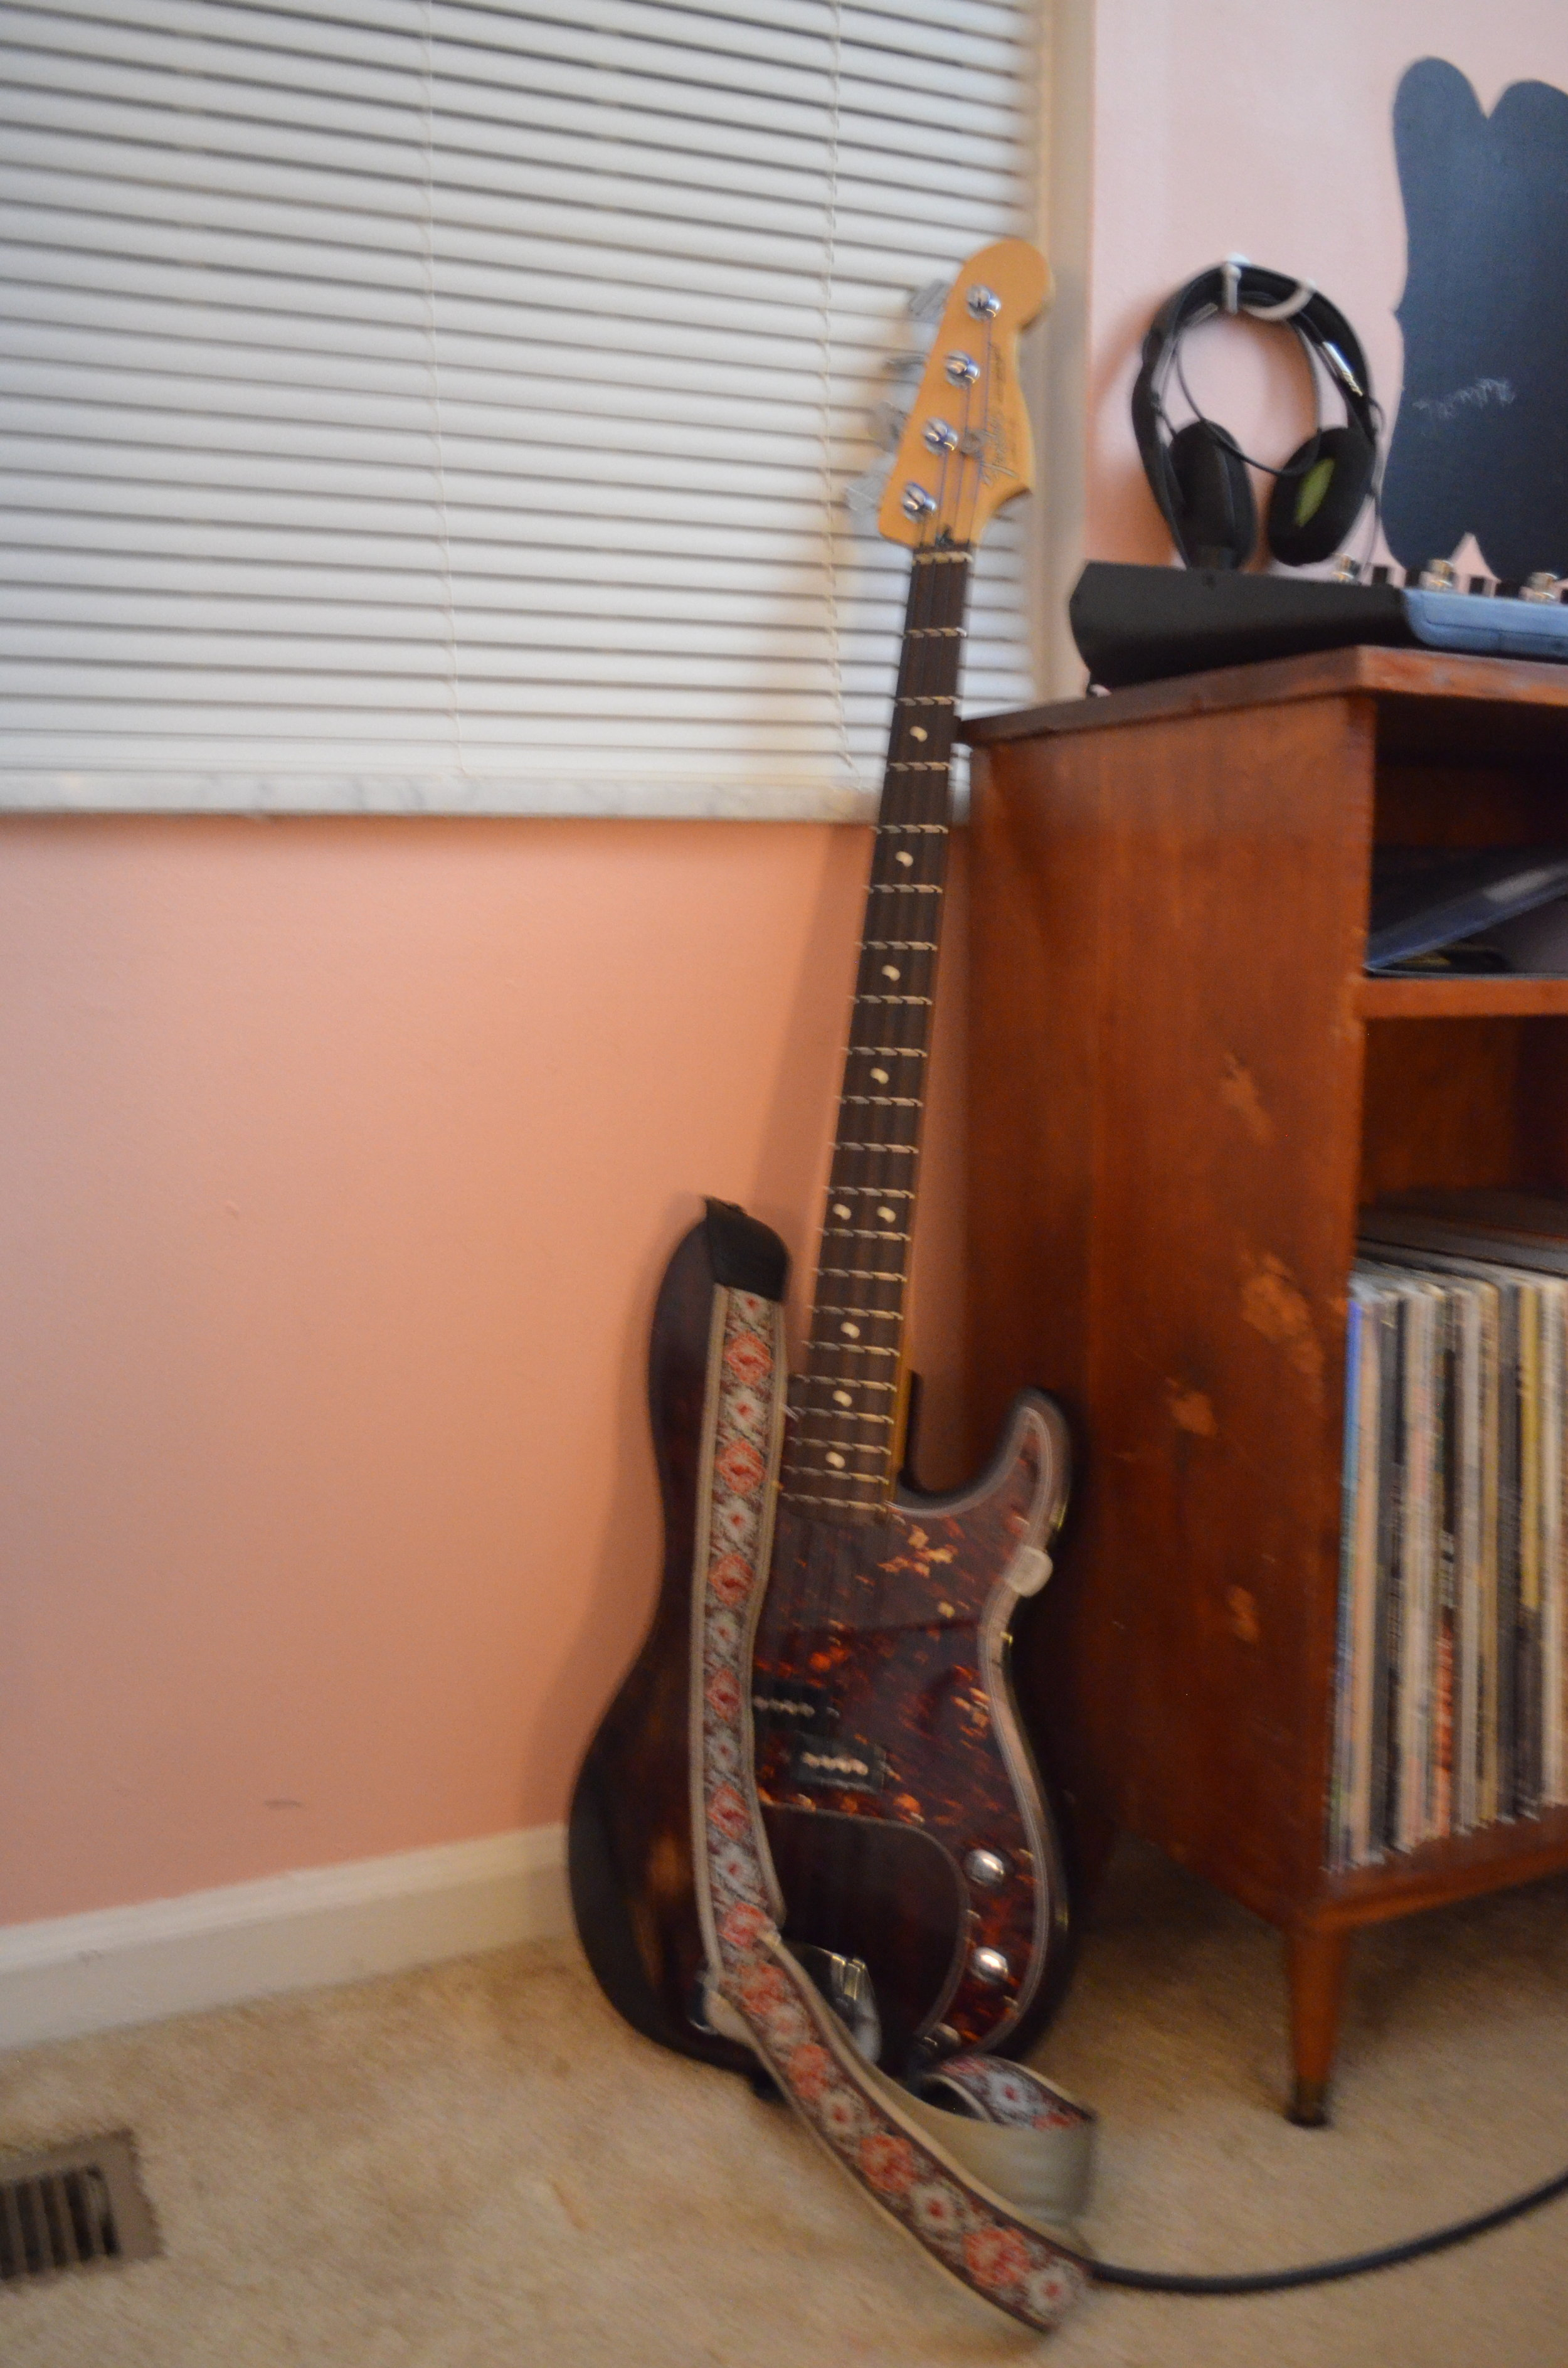 """This is my Fender Precision Bass - Bass guitar is a significant part of """"Little Flock."""" When I called it quits on our full band in 2016, I started playing bass more than guitar. Although I still have a long way to go, and I lack certain qualities of 'true' bassists, I feel confident behind the instrument. I consider bass the key instrument behind many of the songs on the album. Utilizing the bass guitar (or bass synth) to serve a song's structure has been one of the biggest steps forward I've taken as a musician in the last couple years.The neck on this bass is from 1994, I think? Mexican made. The body is also Mexican, but it's from a different year. It came with a Seymour Duncan Basslines pickup in it, and I upgraded the bridge at some point. I also prefer tape-wound strings for the warm, smooth tone they provide. It's not really worth much attention, but it does what I want it to do, and it feels good under my fingers."""